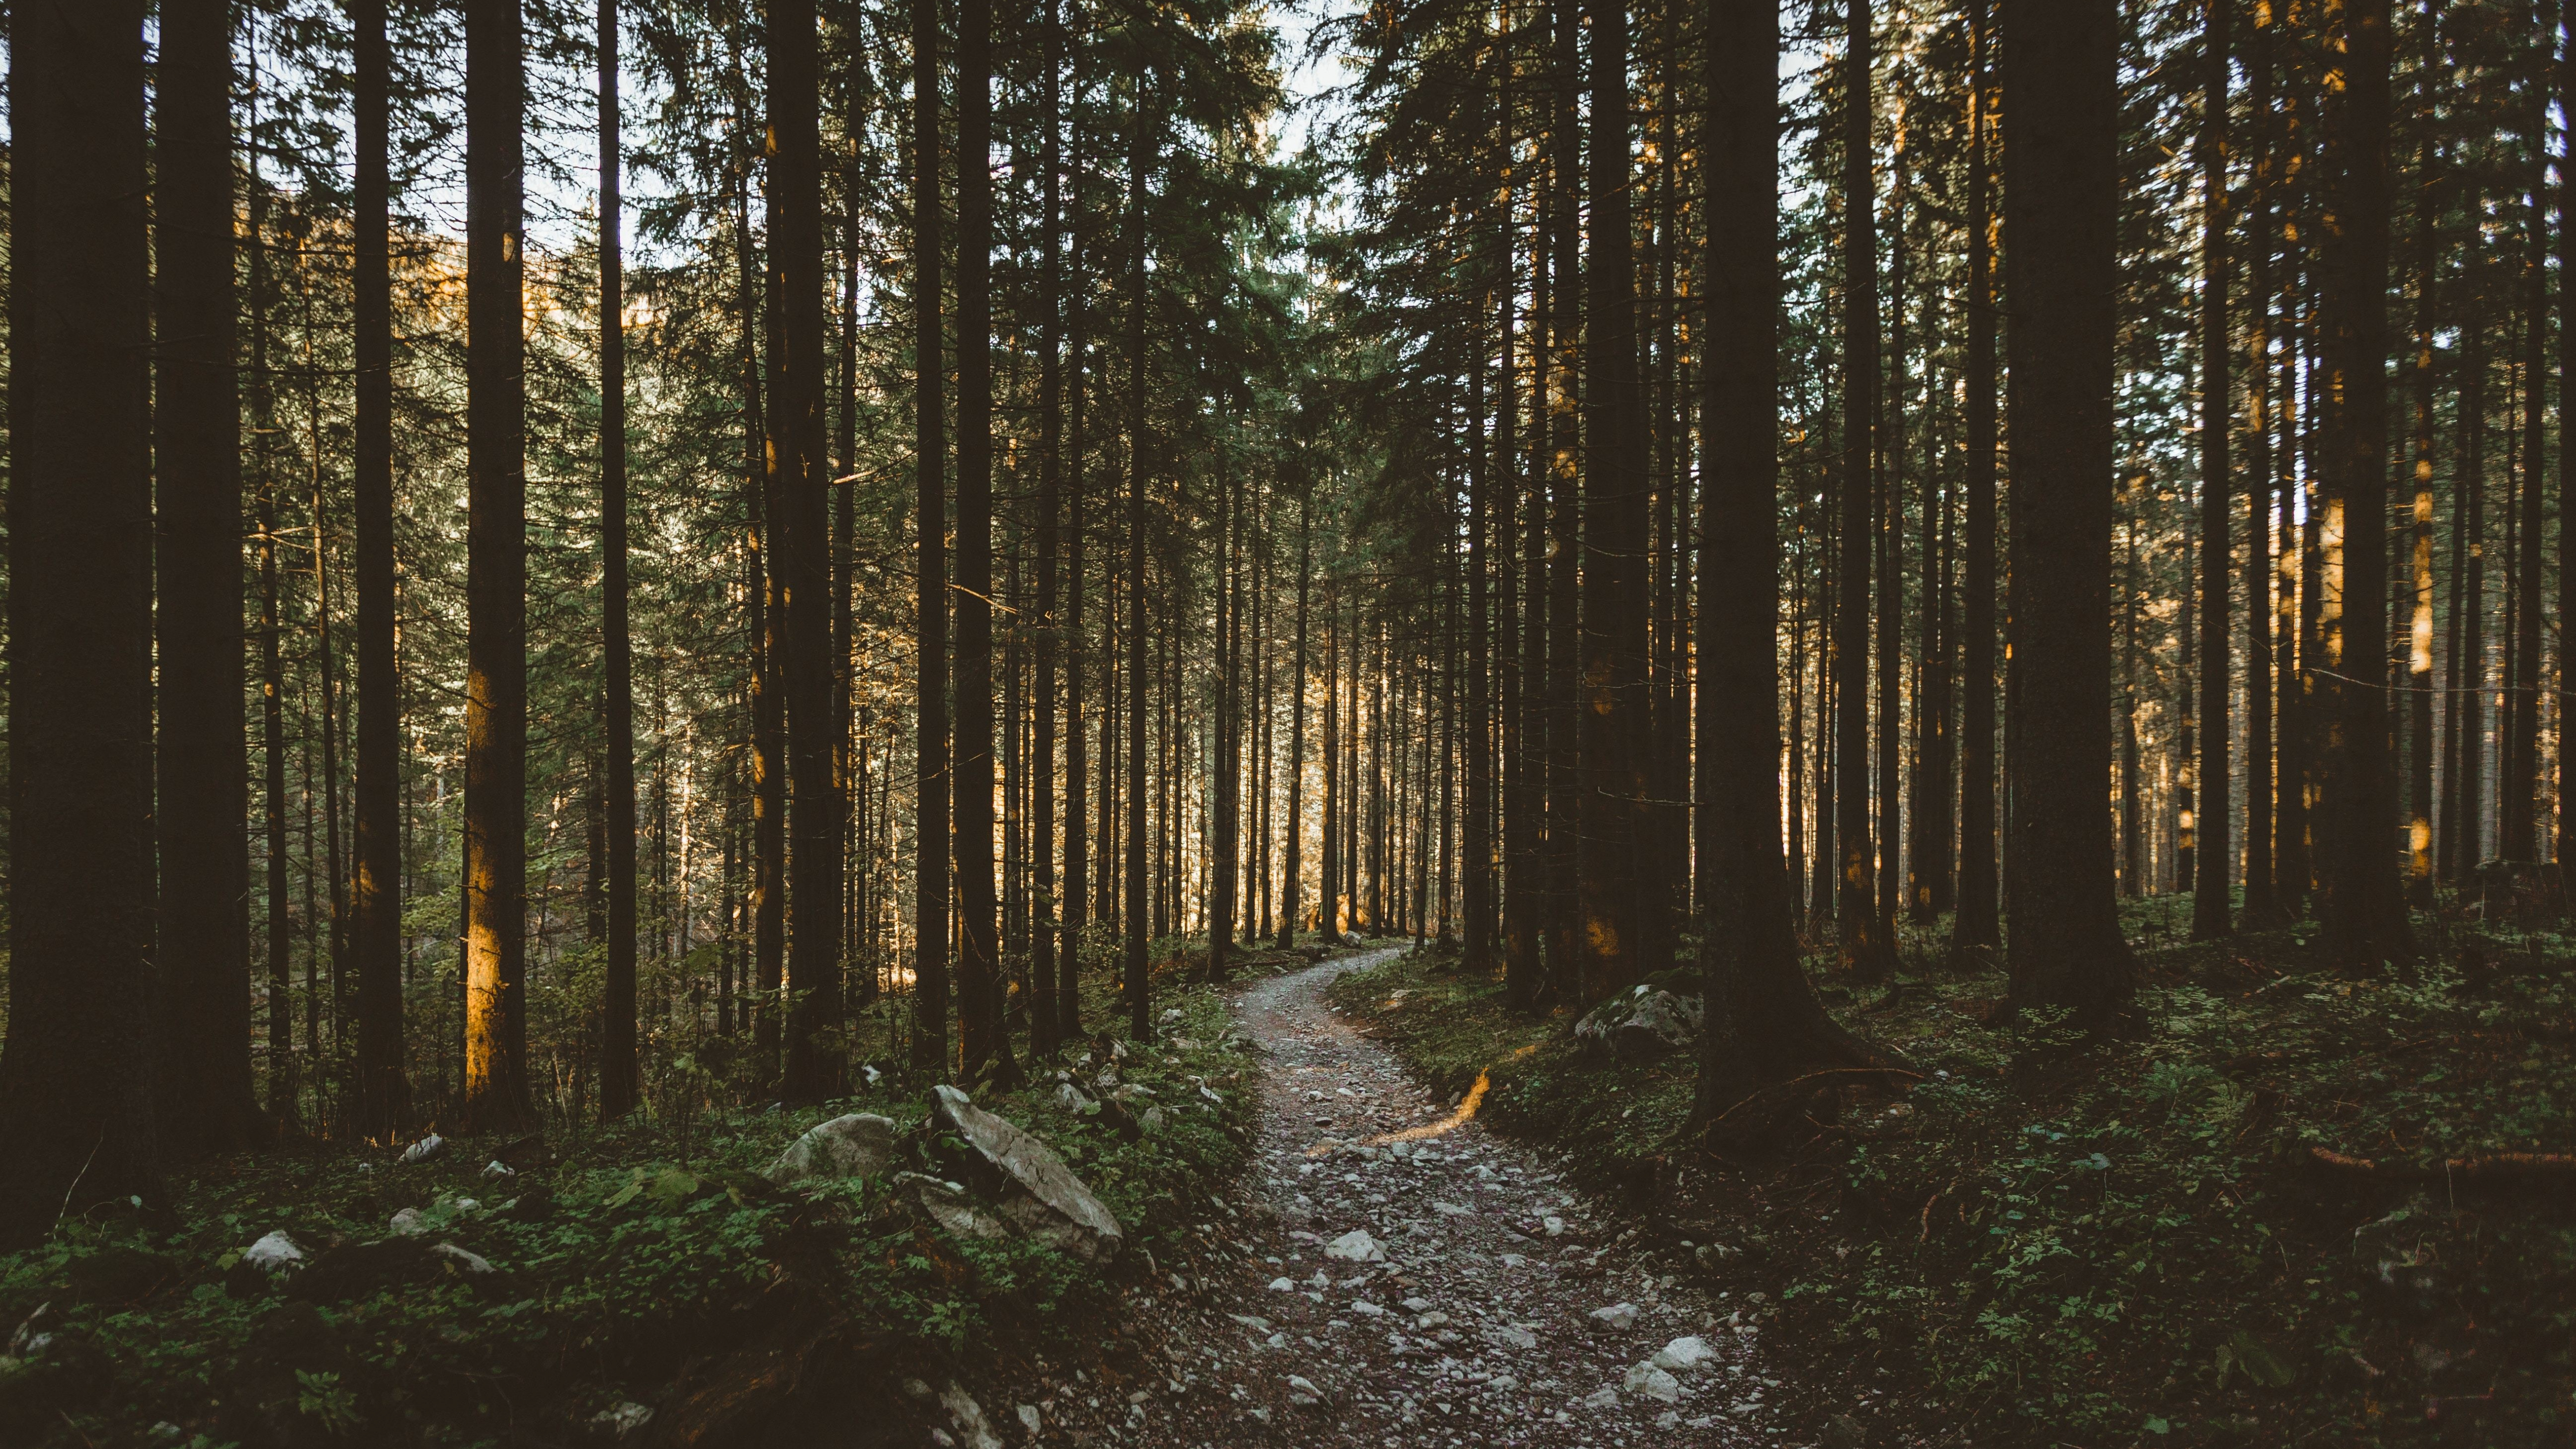 Dirt Pathway Forest Trees Nature 5120x2880 5k Wallpaper